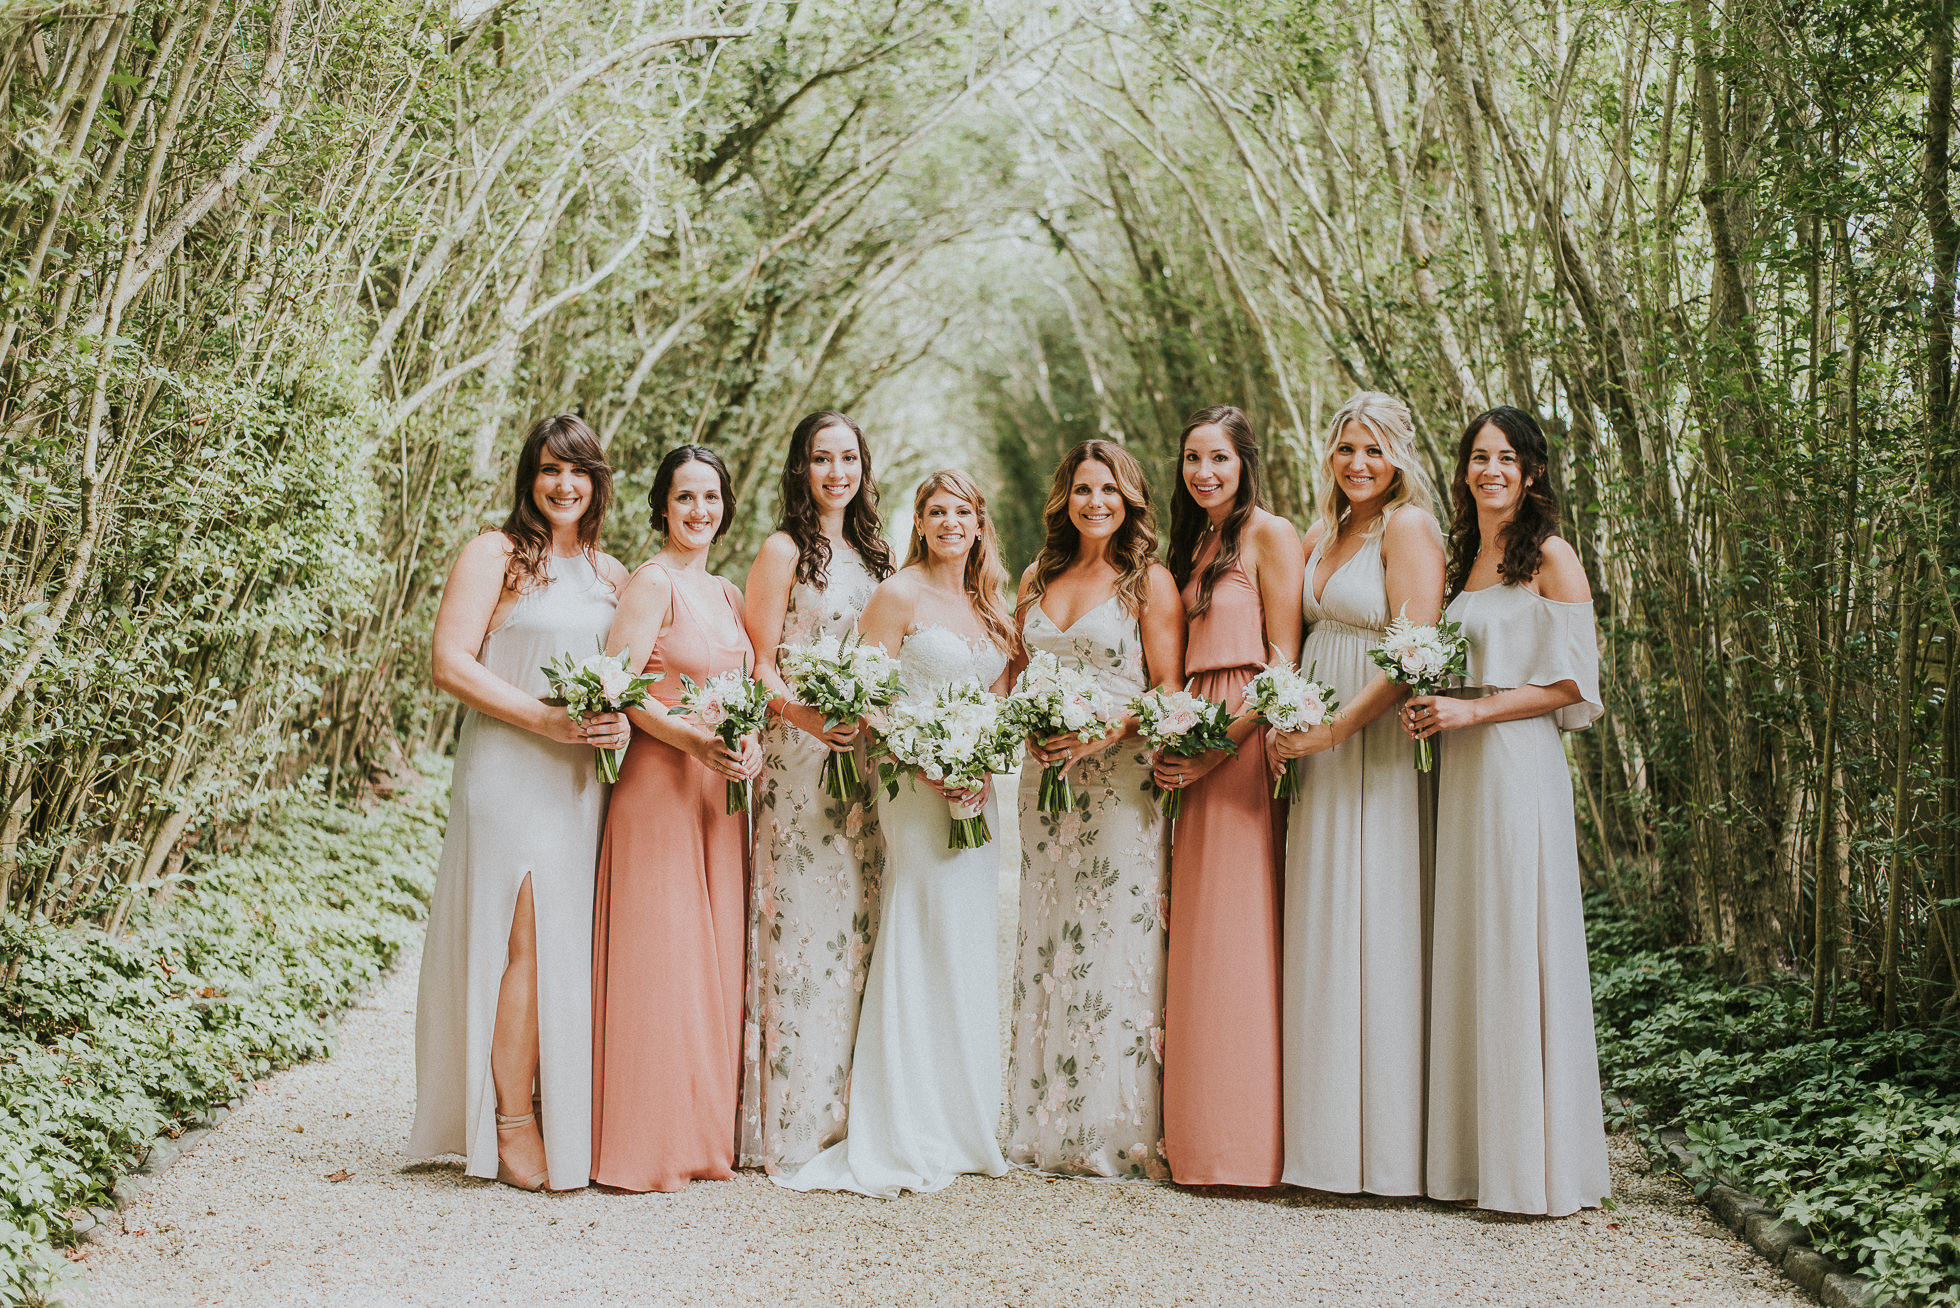 bridal party dress ideas Long Island wedding